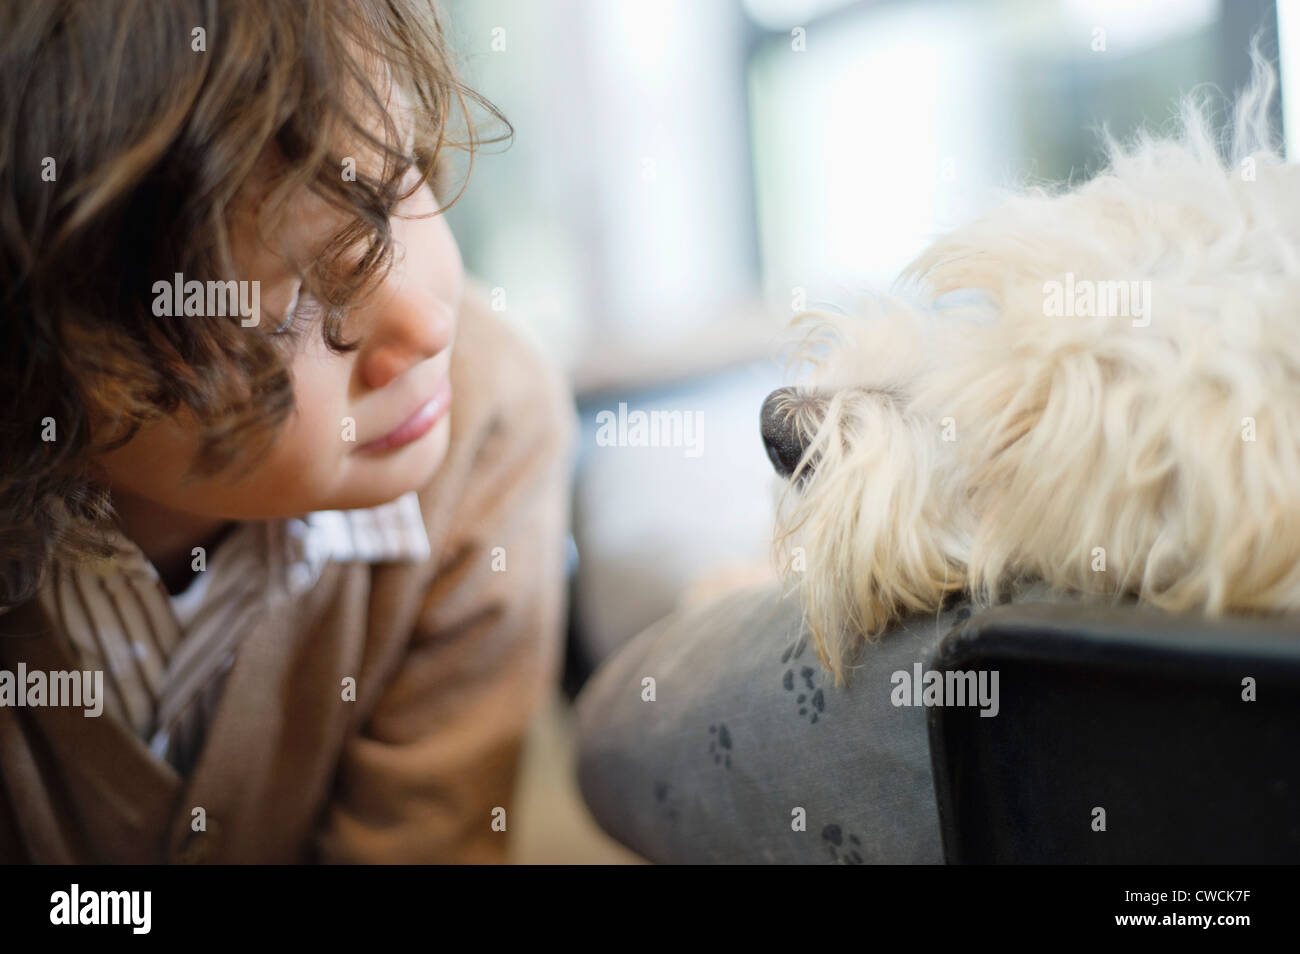 Close-up of a boy looking at a dog Stock Photo